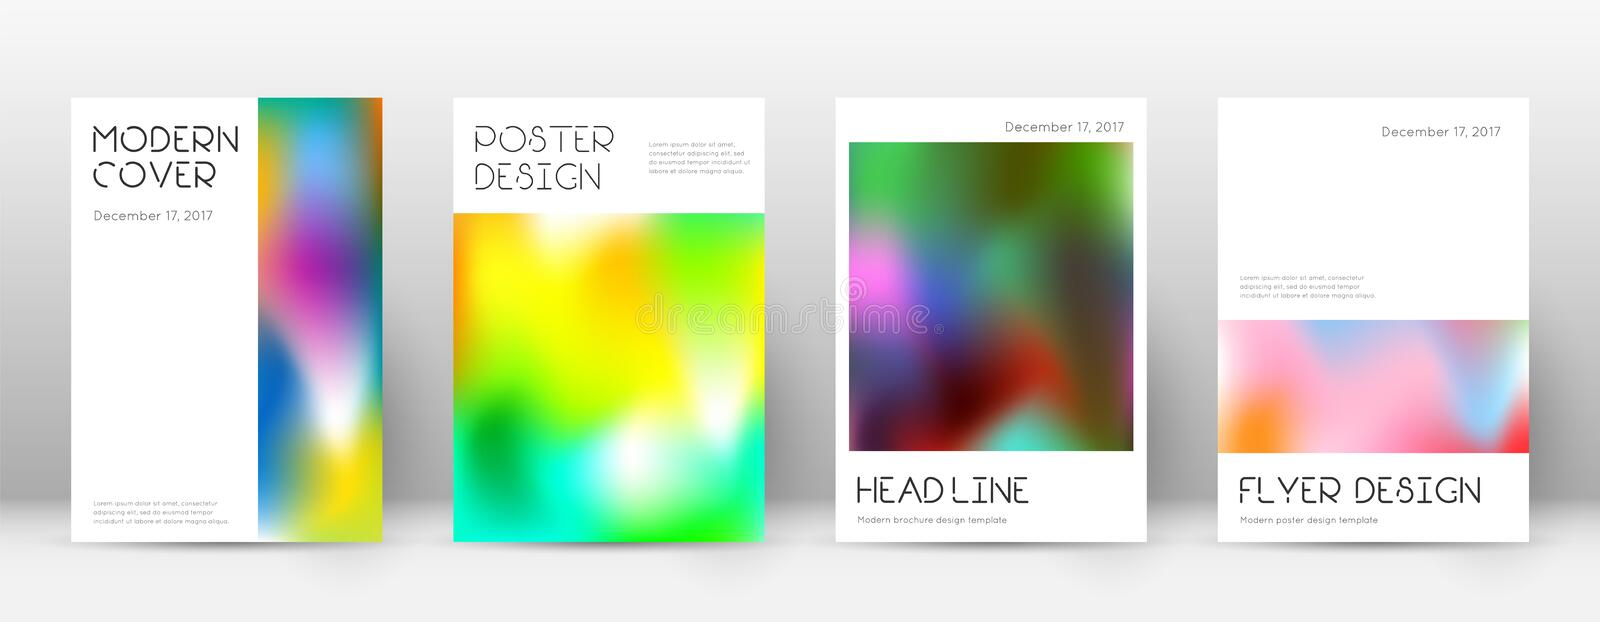 Flyer layout. Minimal exquisite template for Broch. Ure, Annual Report, Magazine, Poster, Corporate Presentation, Portfolio, Flyer. Appealing colorful cover page royalty free illustration